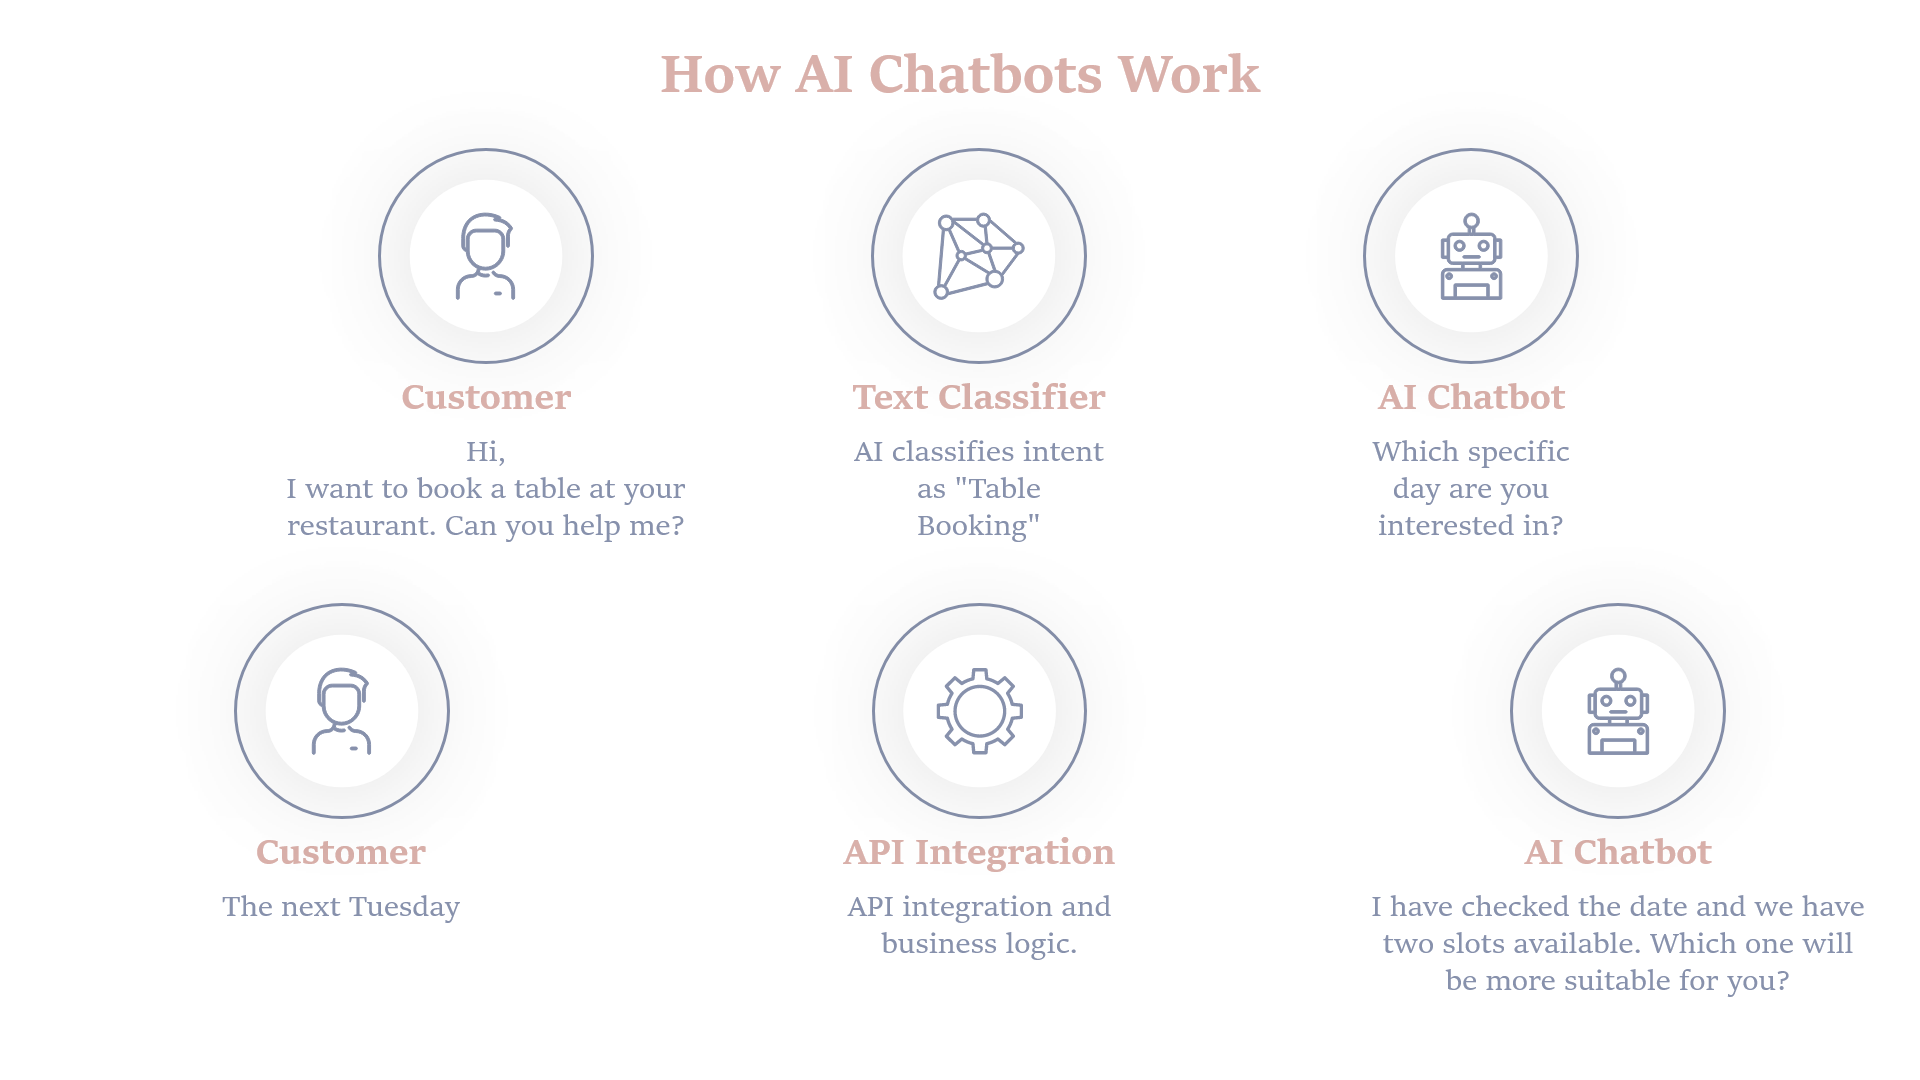 How to Build a Chatbot from Scratch with Artificial Intelligence